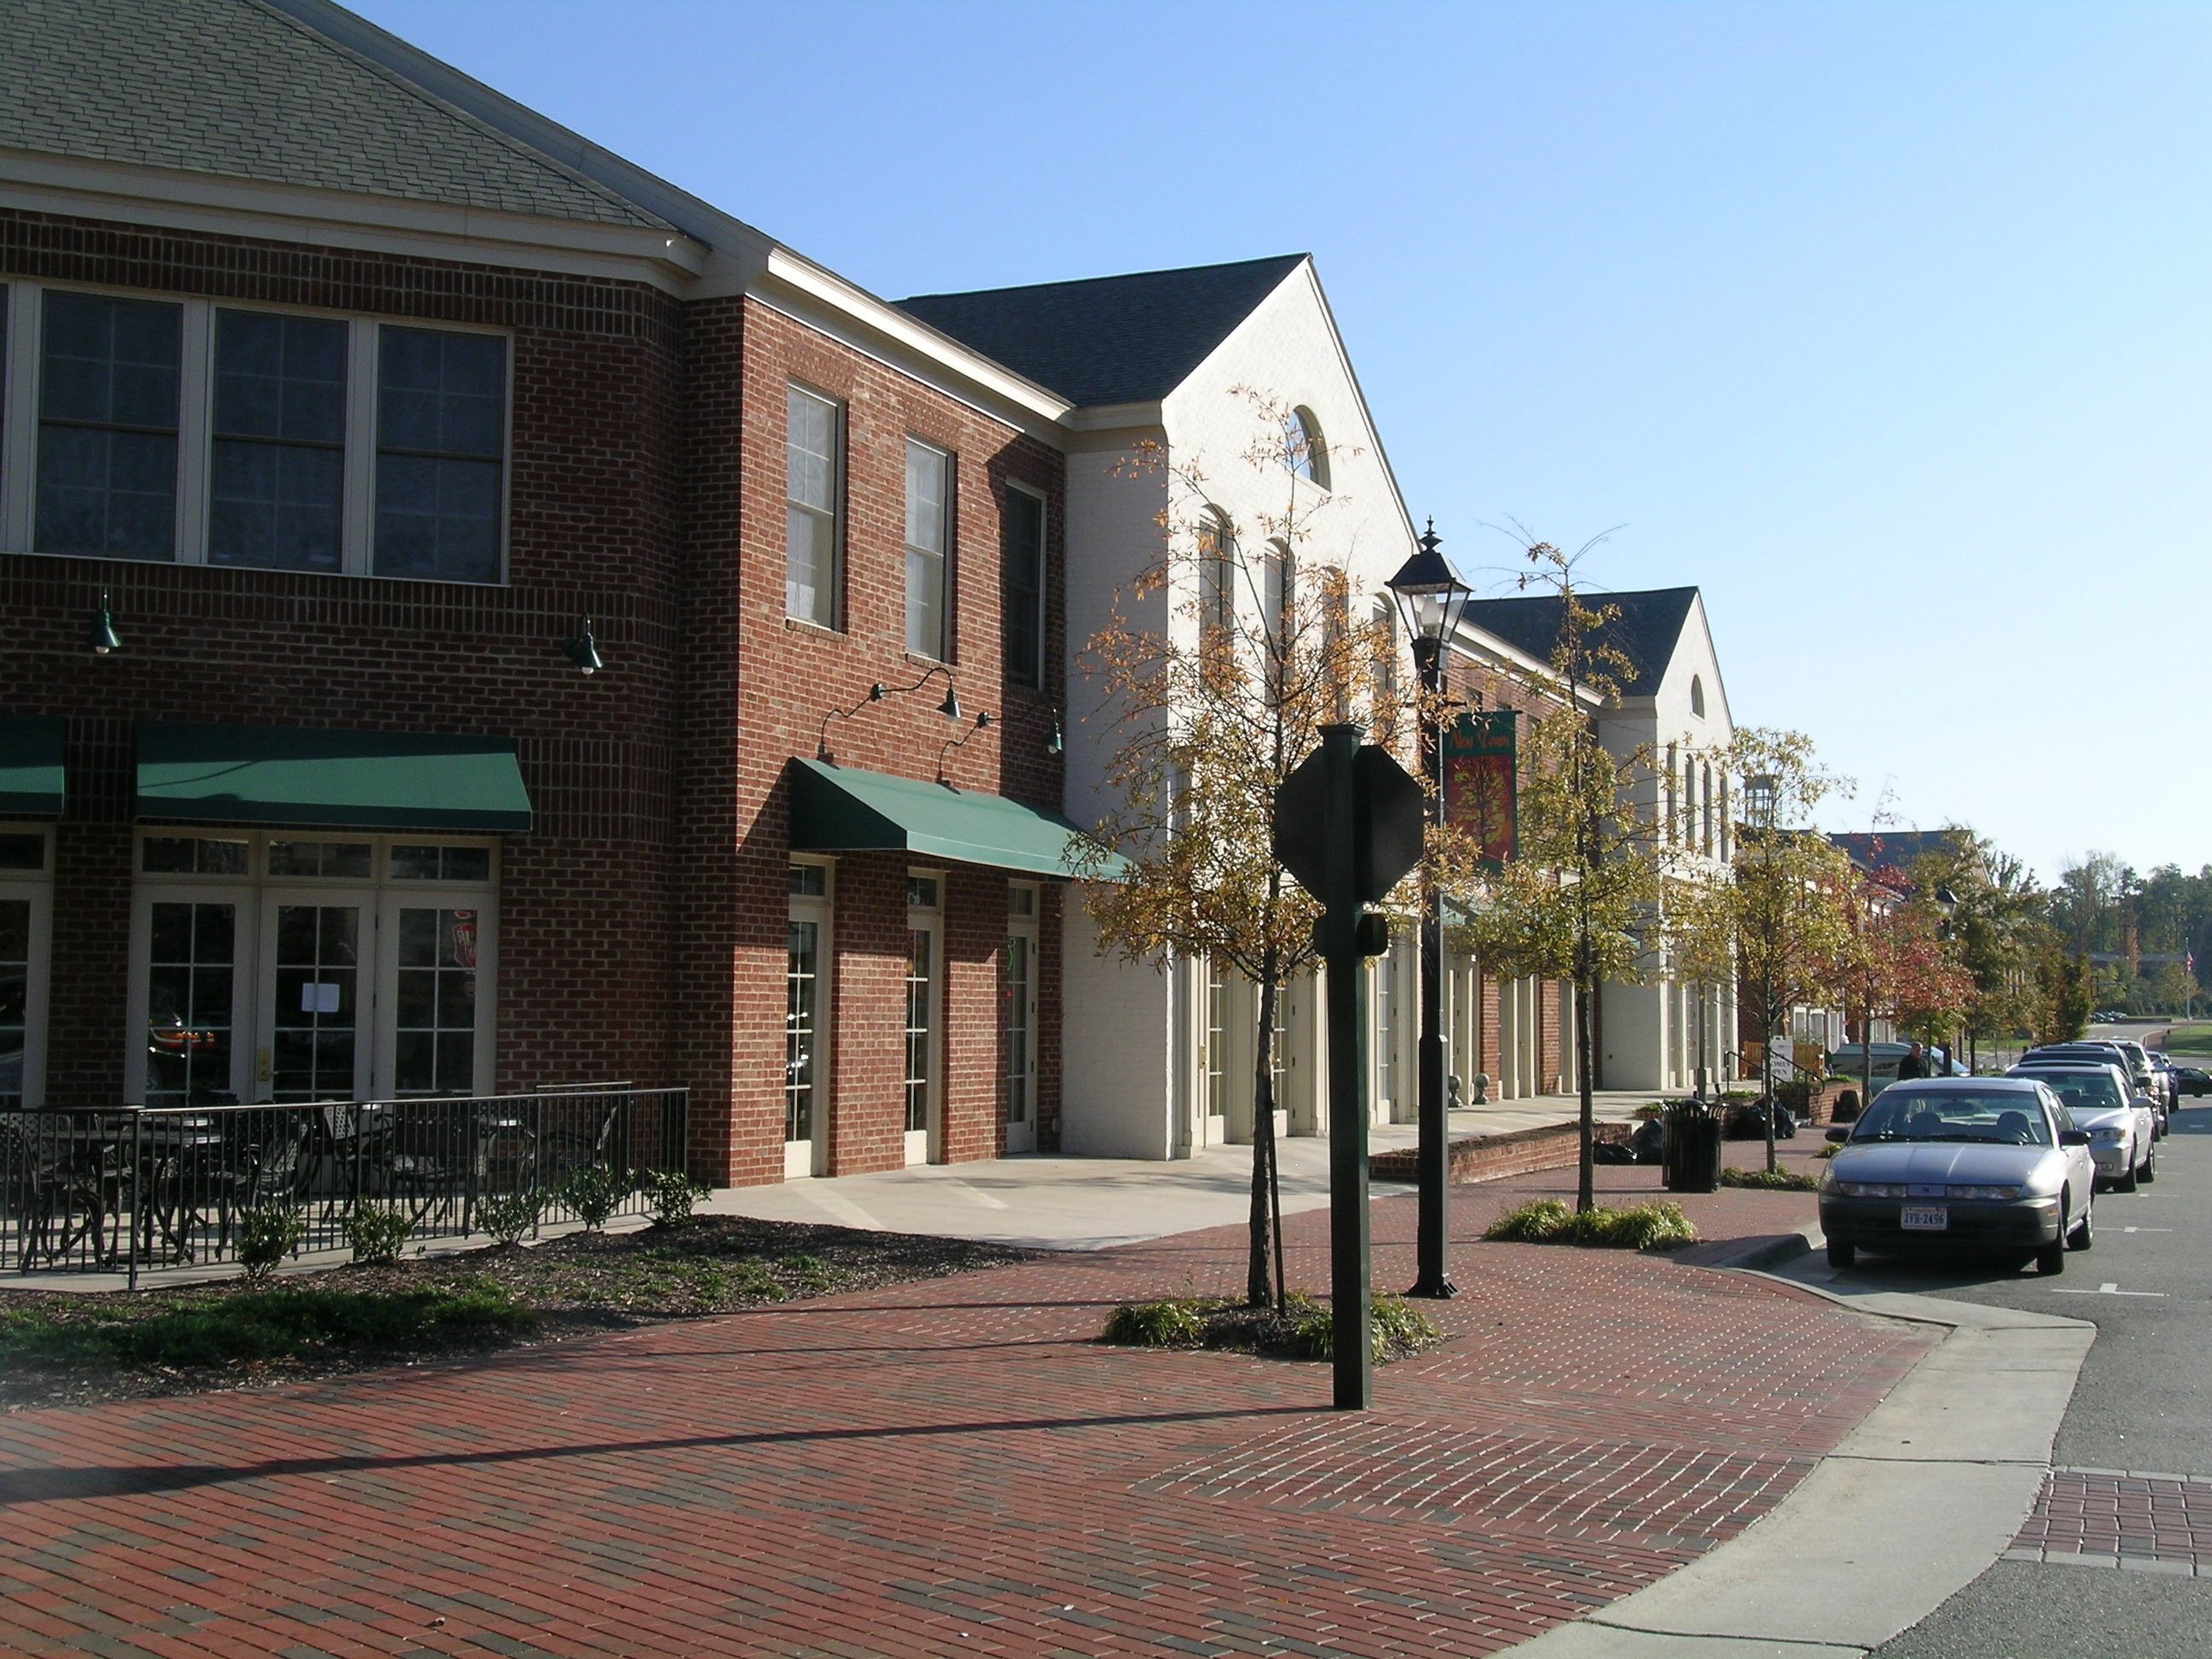 New Homes For Sale In Williamsburg Va